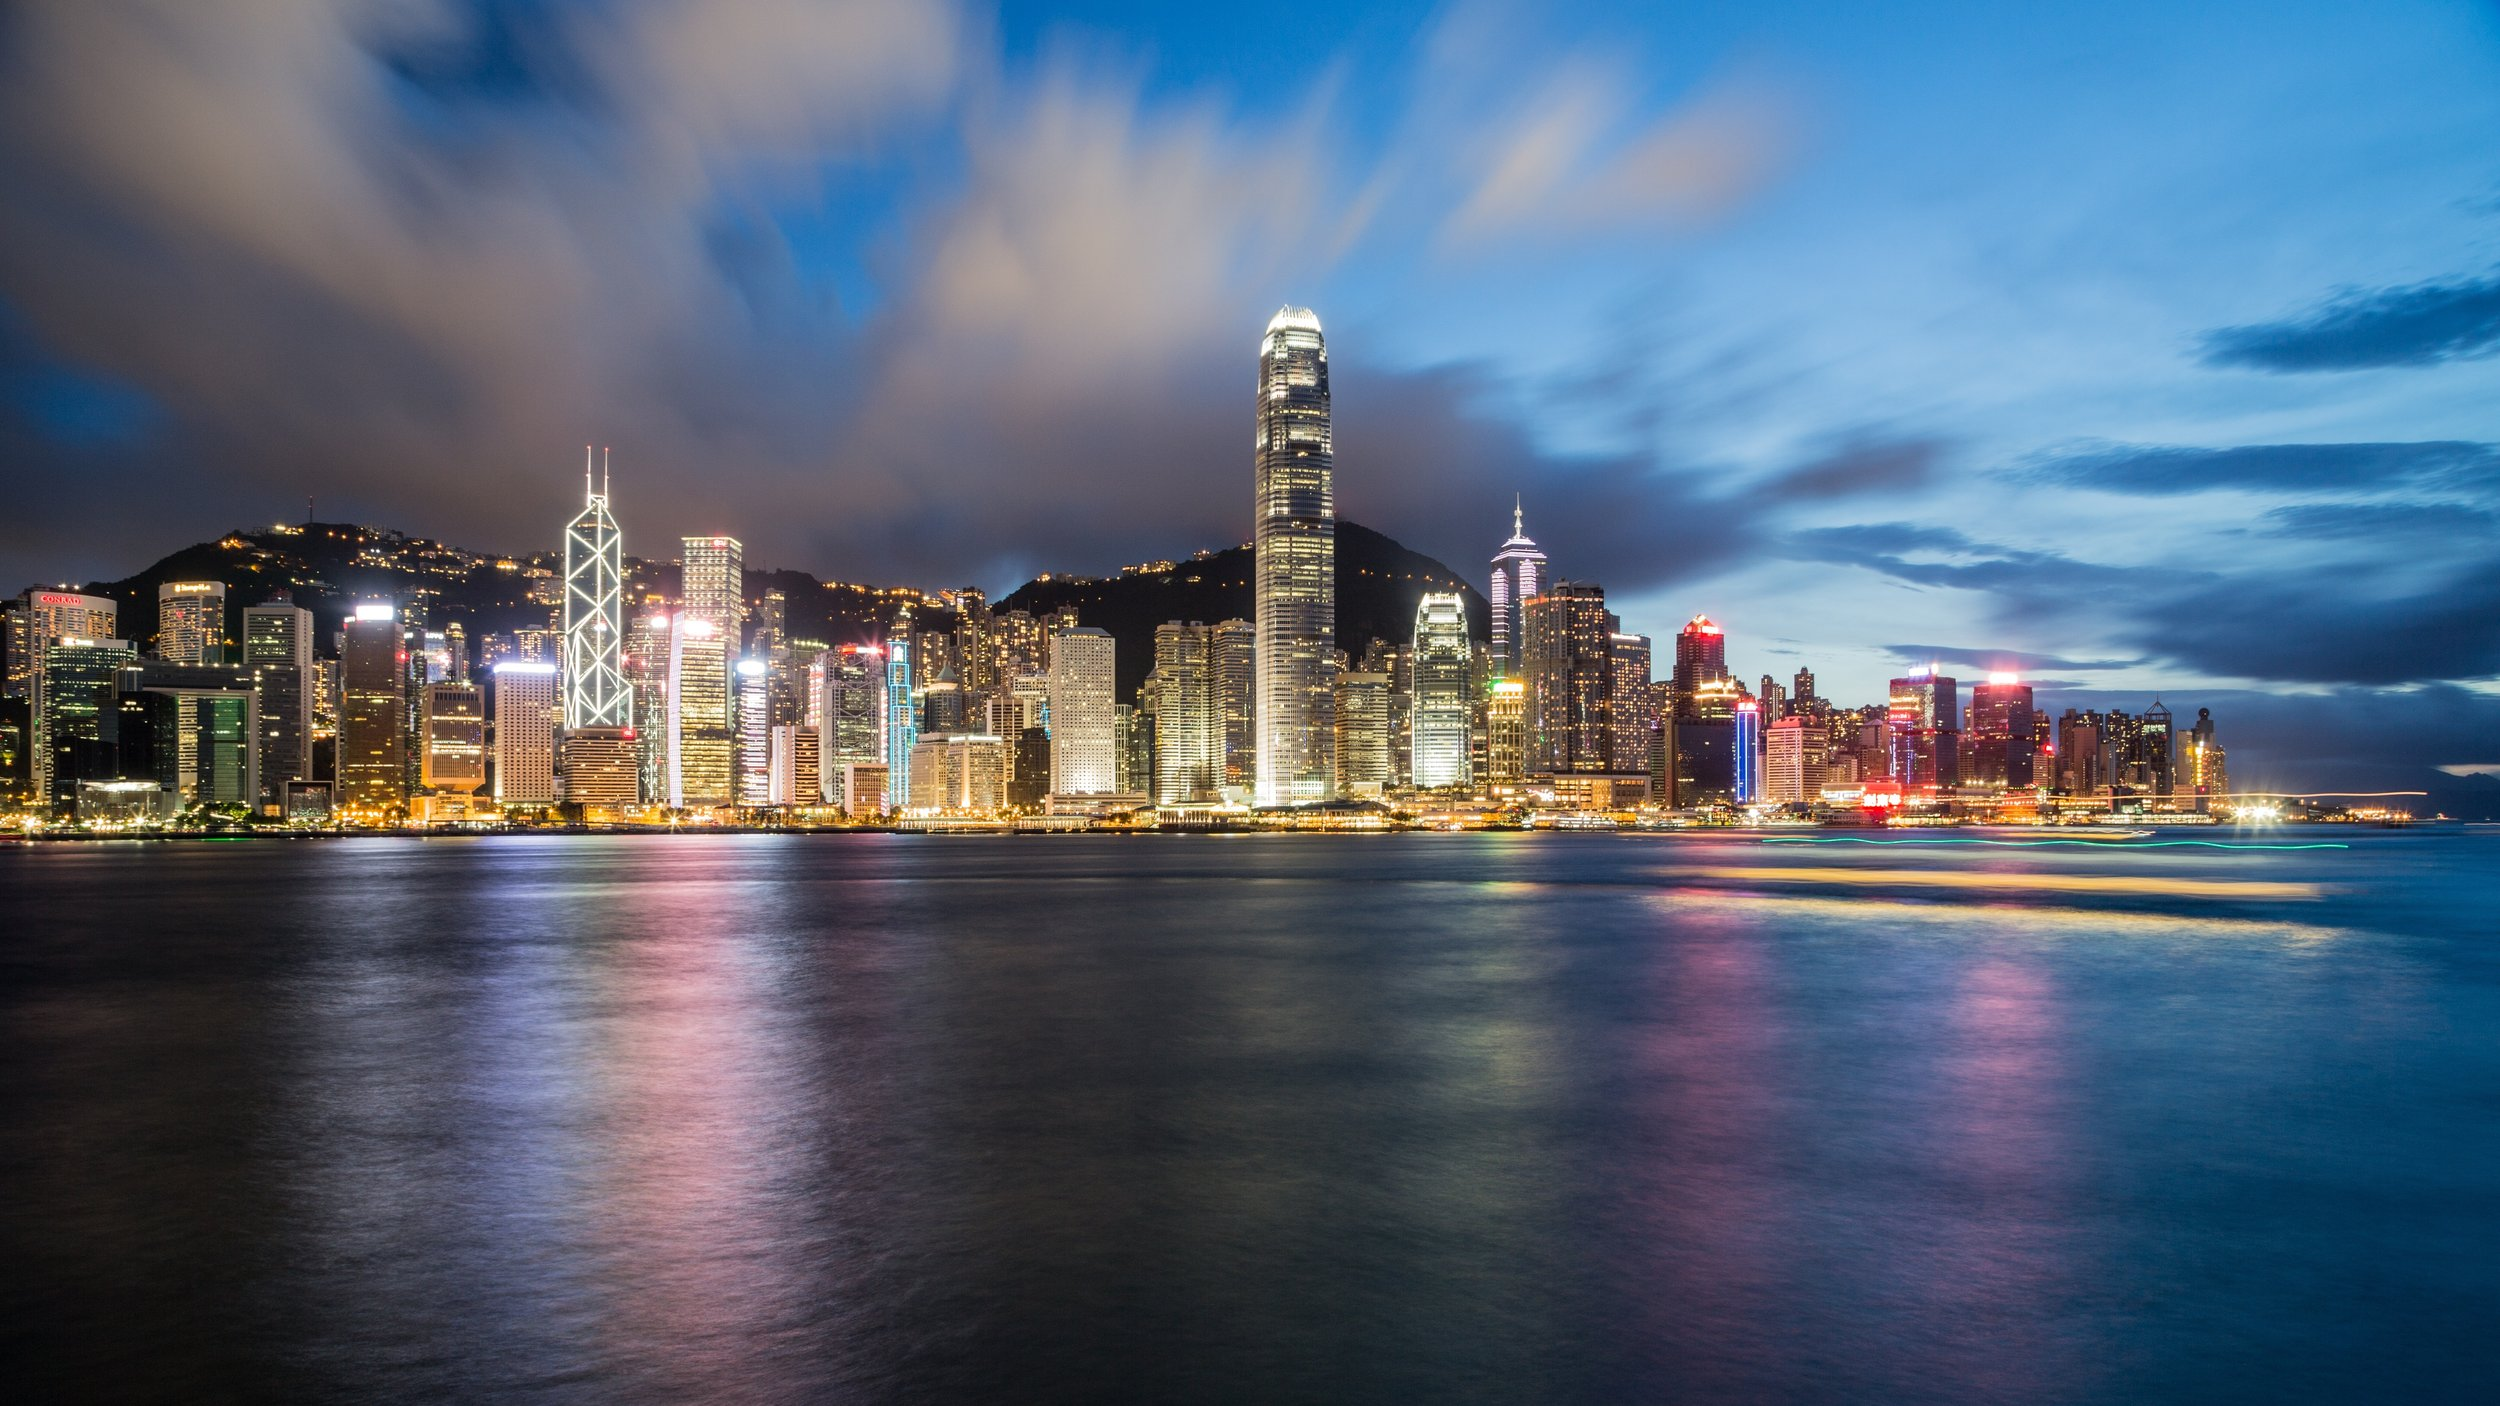 We love Hong Kong - so much culture!